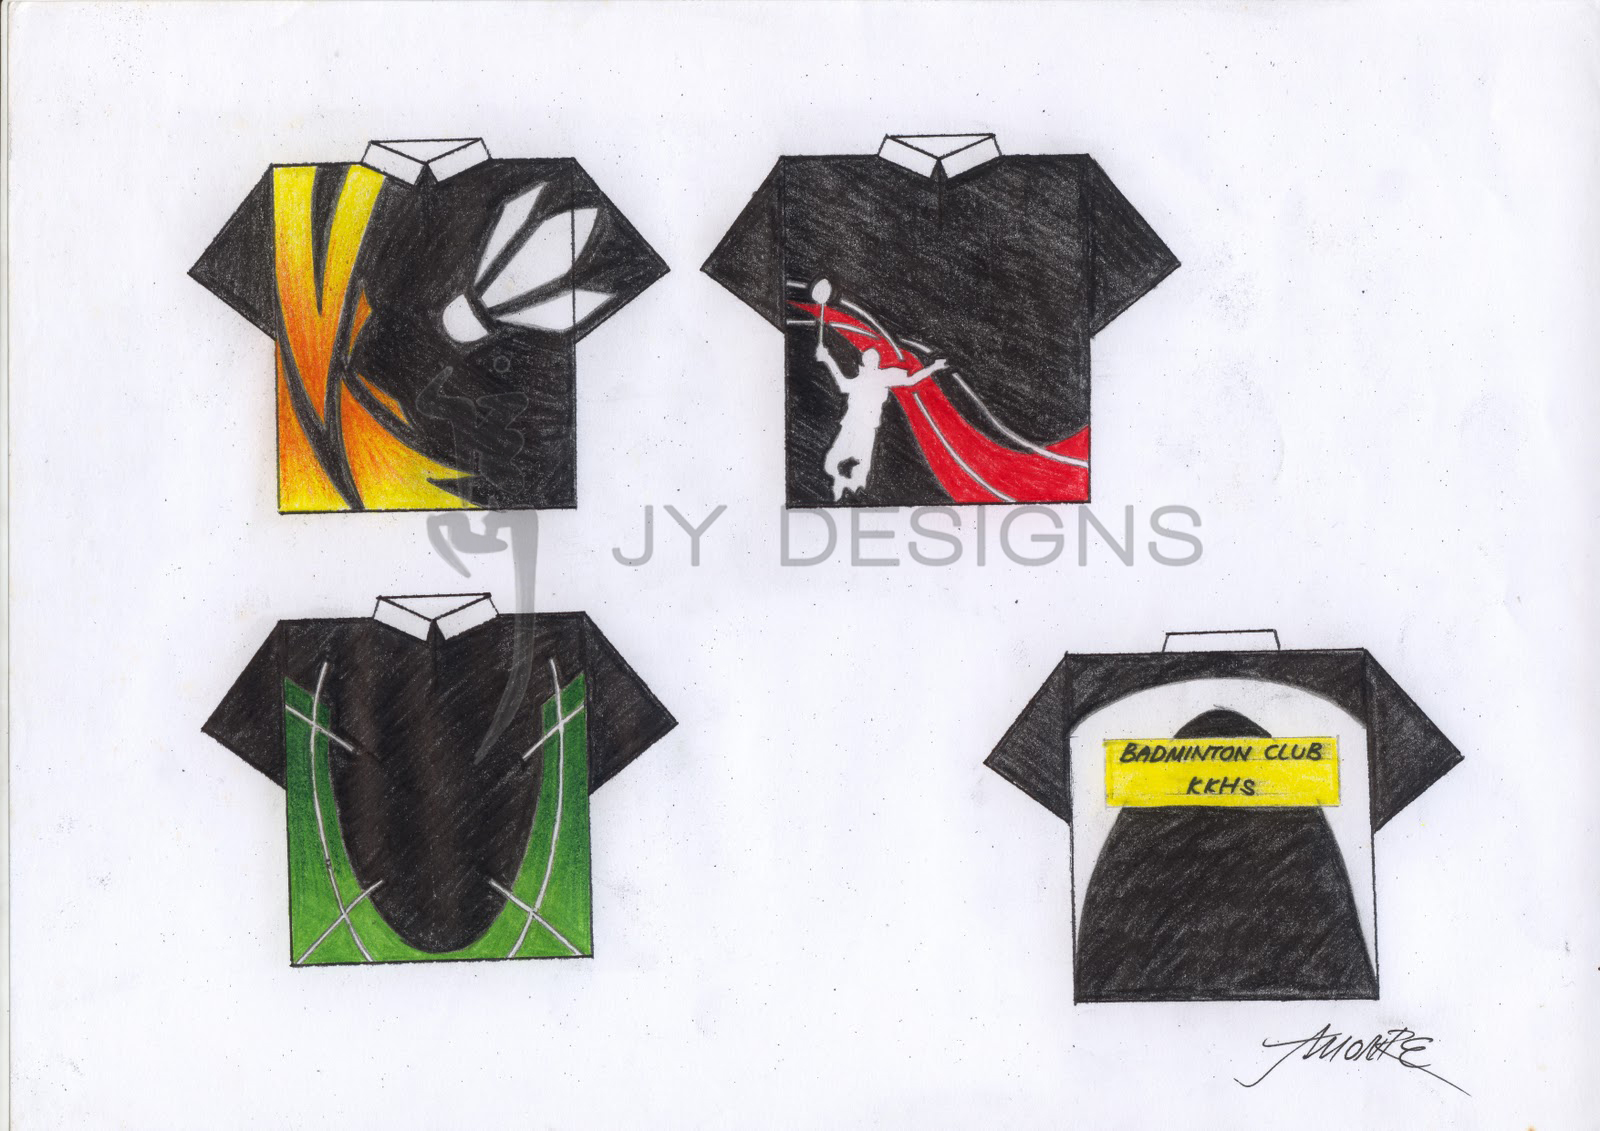 Design t shirt badminton - Design T Shirt Badminton A Couple Of Concept Designs For The Badminton Club Back In